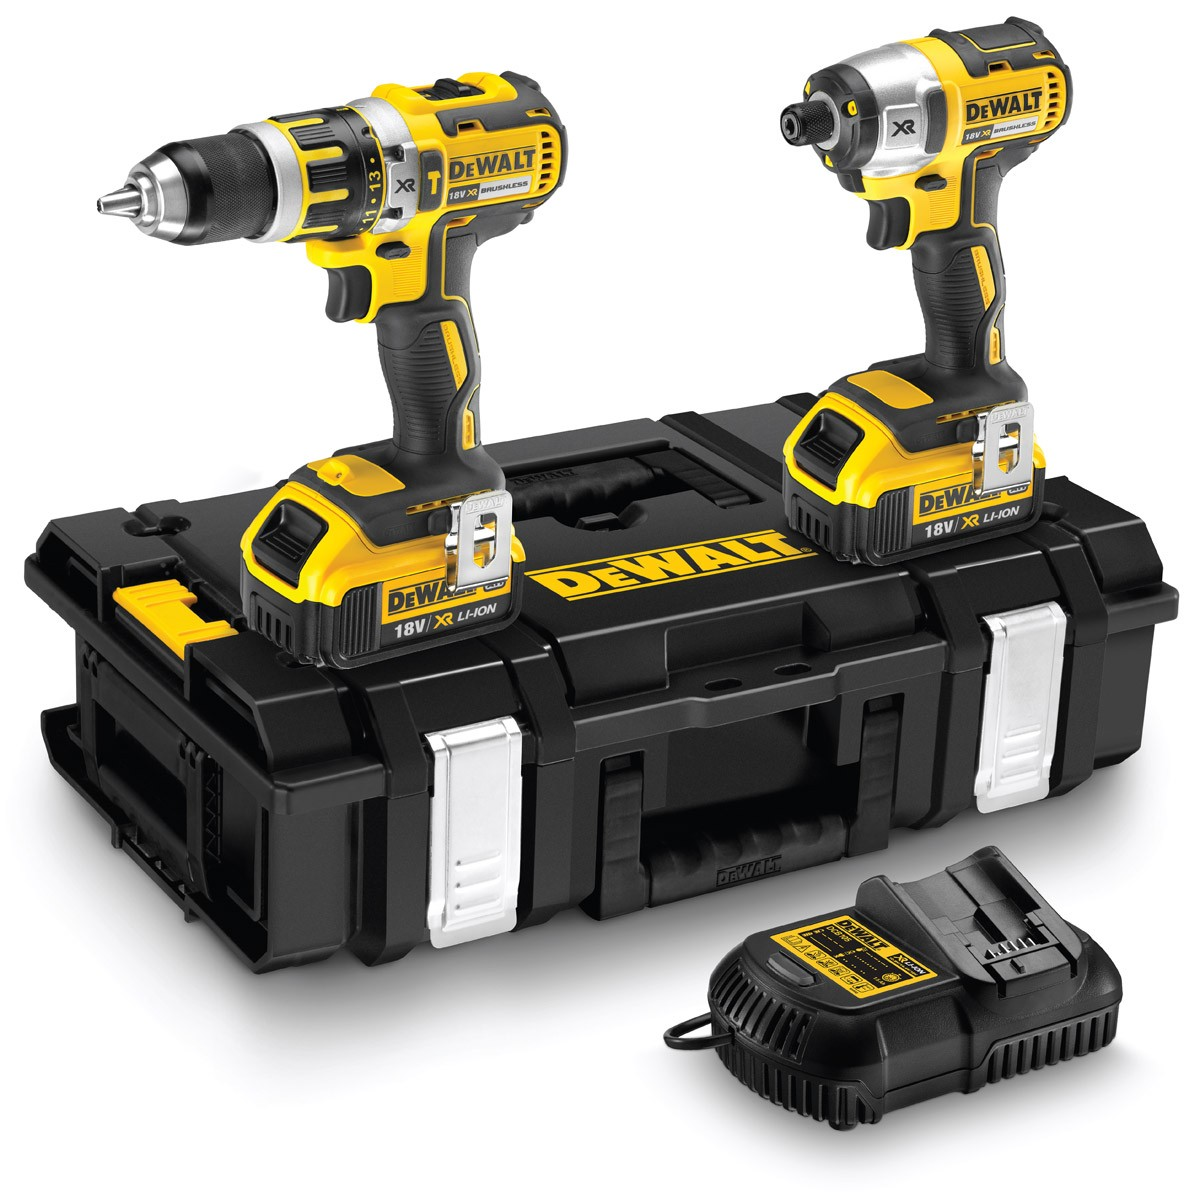 dewalt dck250m2 18v combi drill driver twinpack. Black Bedroom Furniture Sets. Home Design Ideas